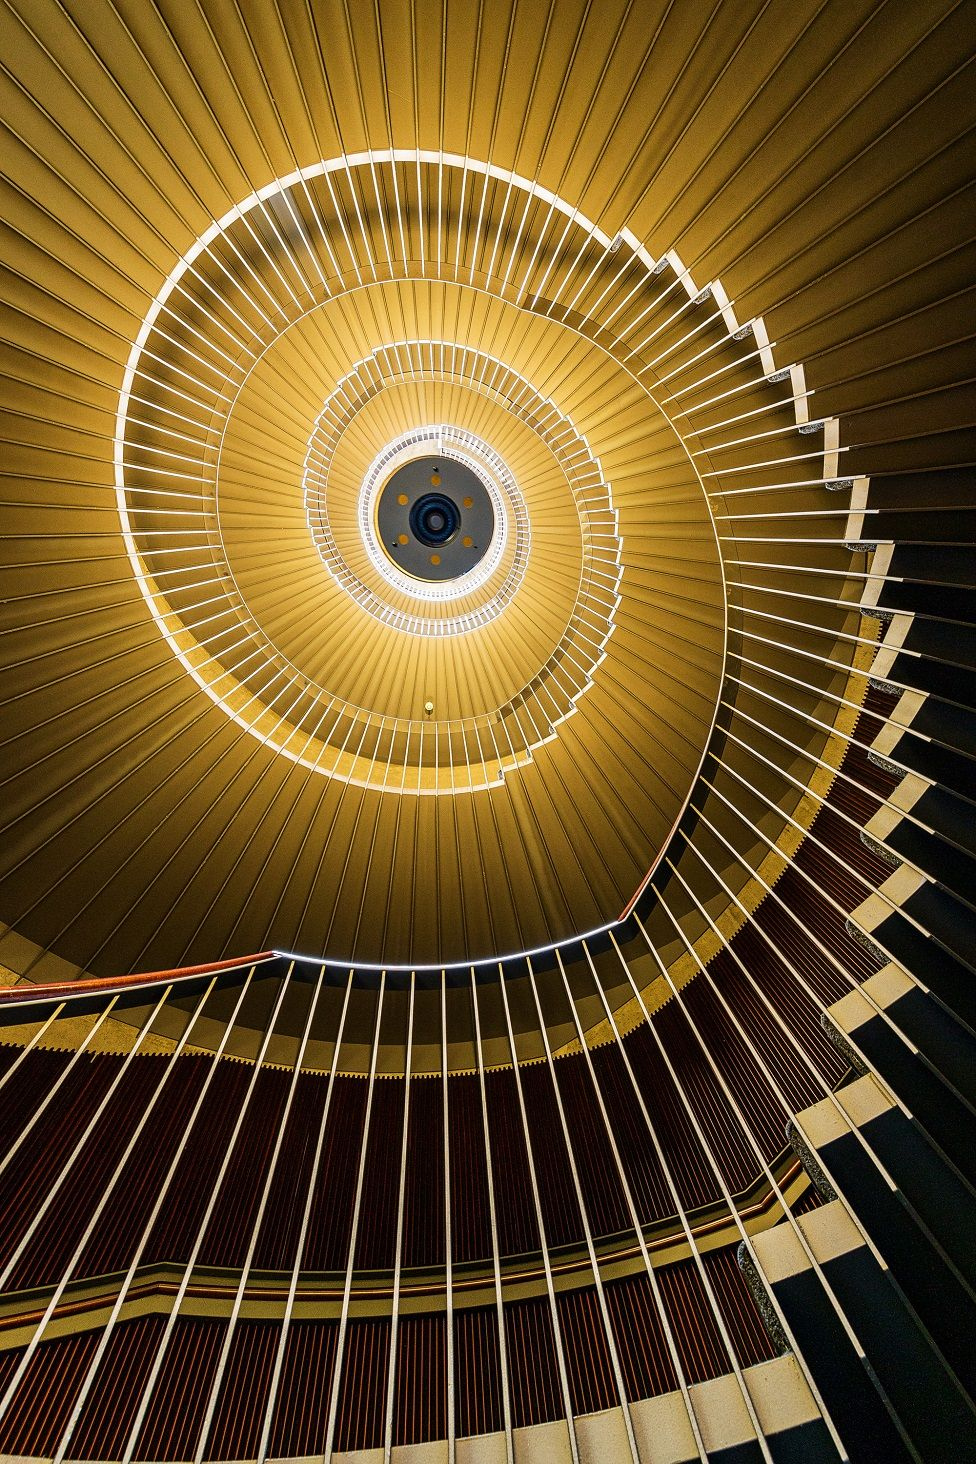 A view looking upward at a spiral staircase